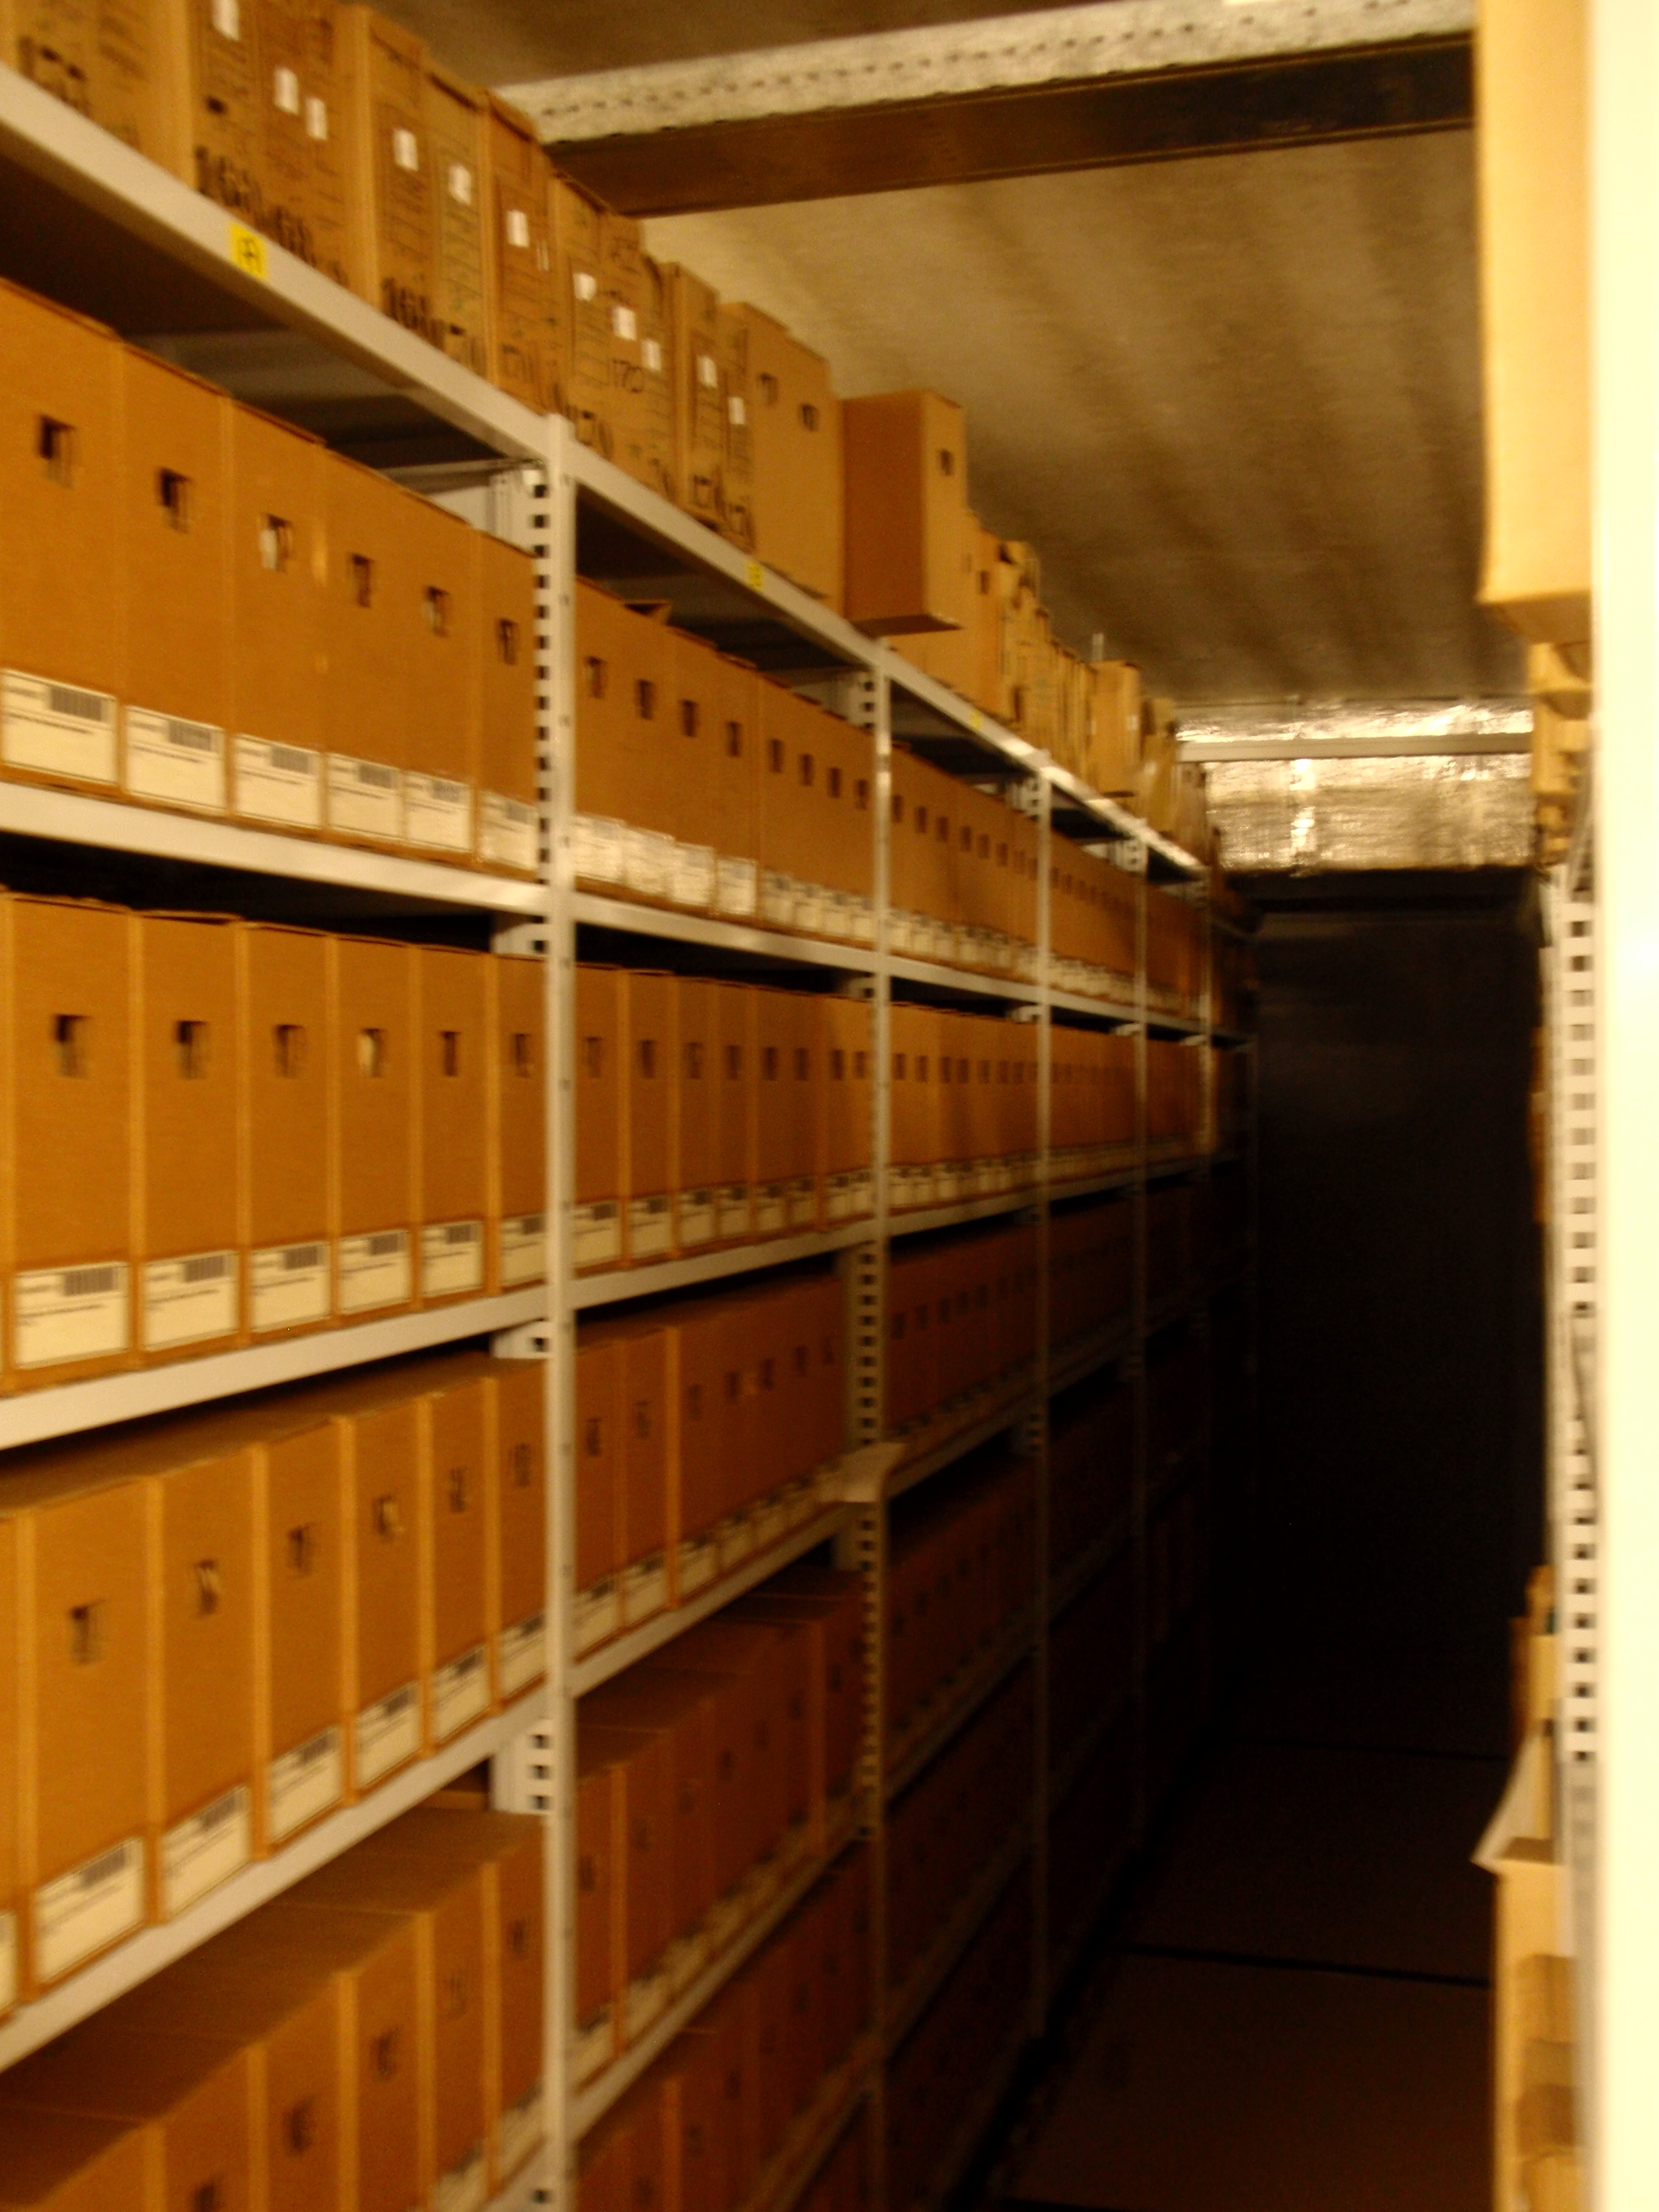 File:Archive boxes 2.JPG - Wikimedia Commons